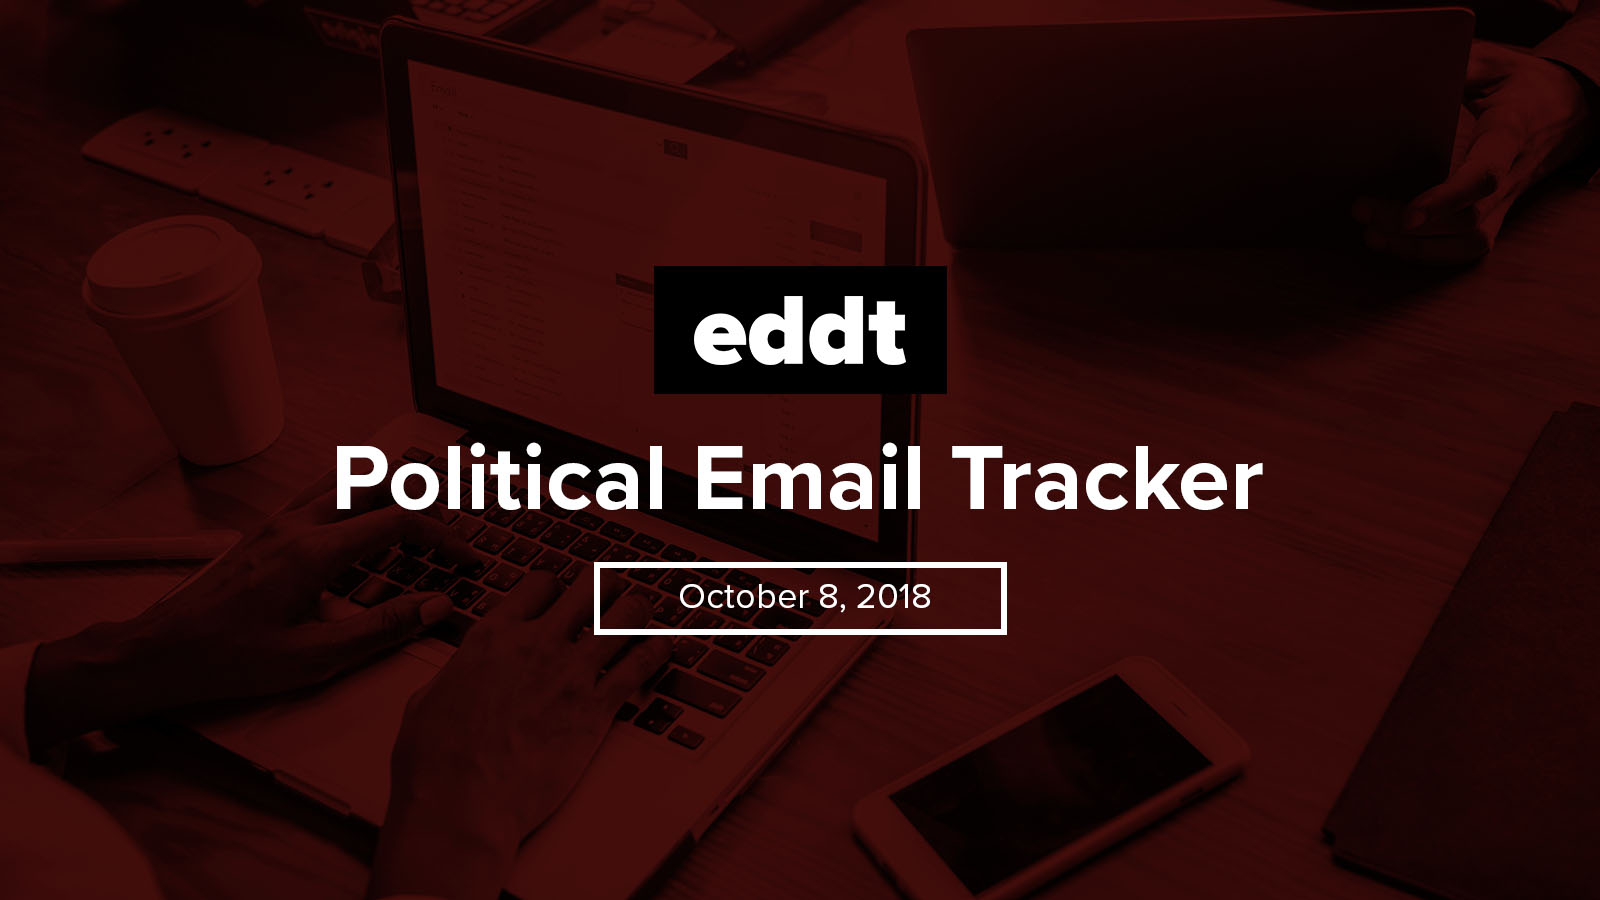 Political Email Tracker - October 8, 2018